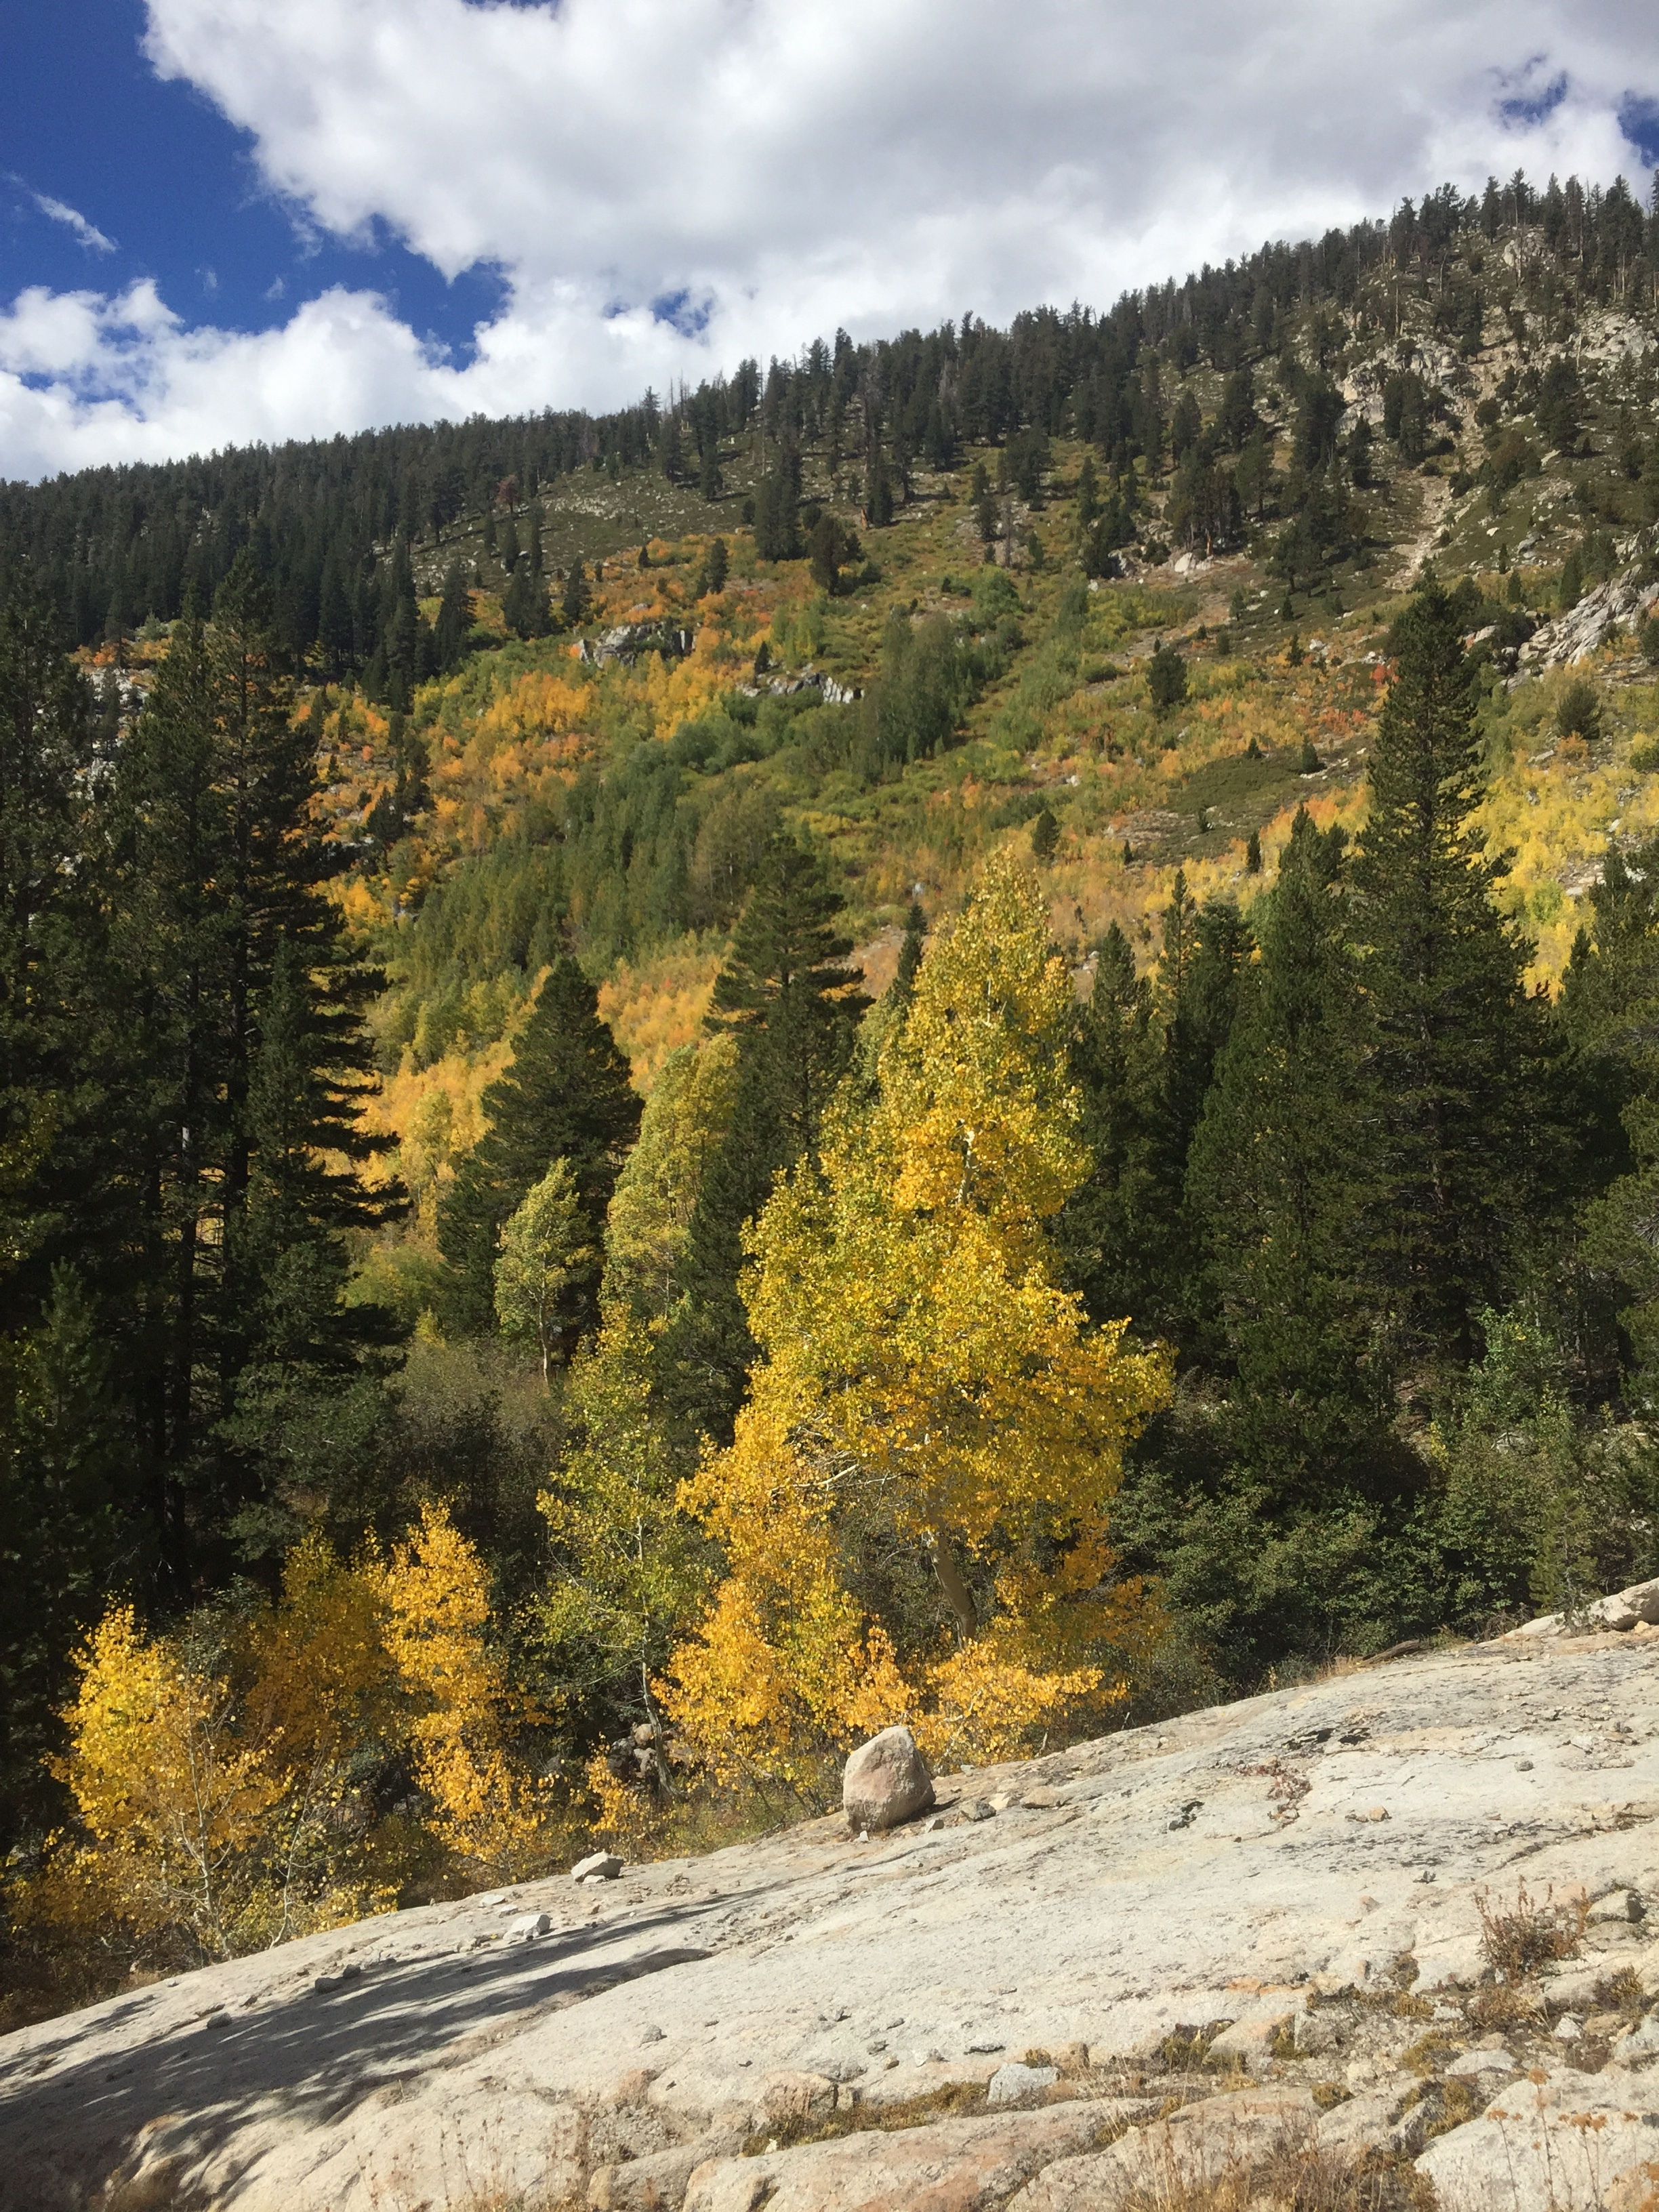 Fall colors on the hillside, and more clouds as we follow the path of Silver Creek towards the edge of the canyon